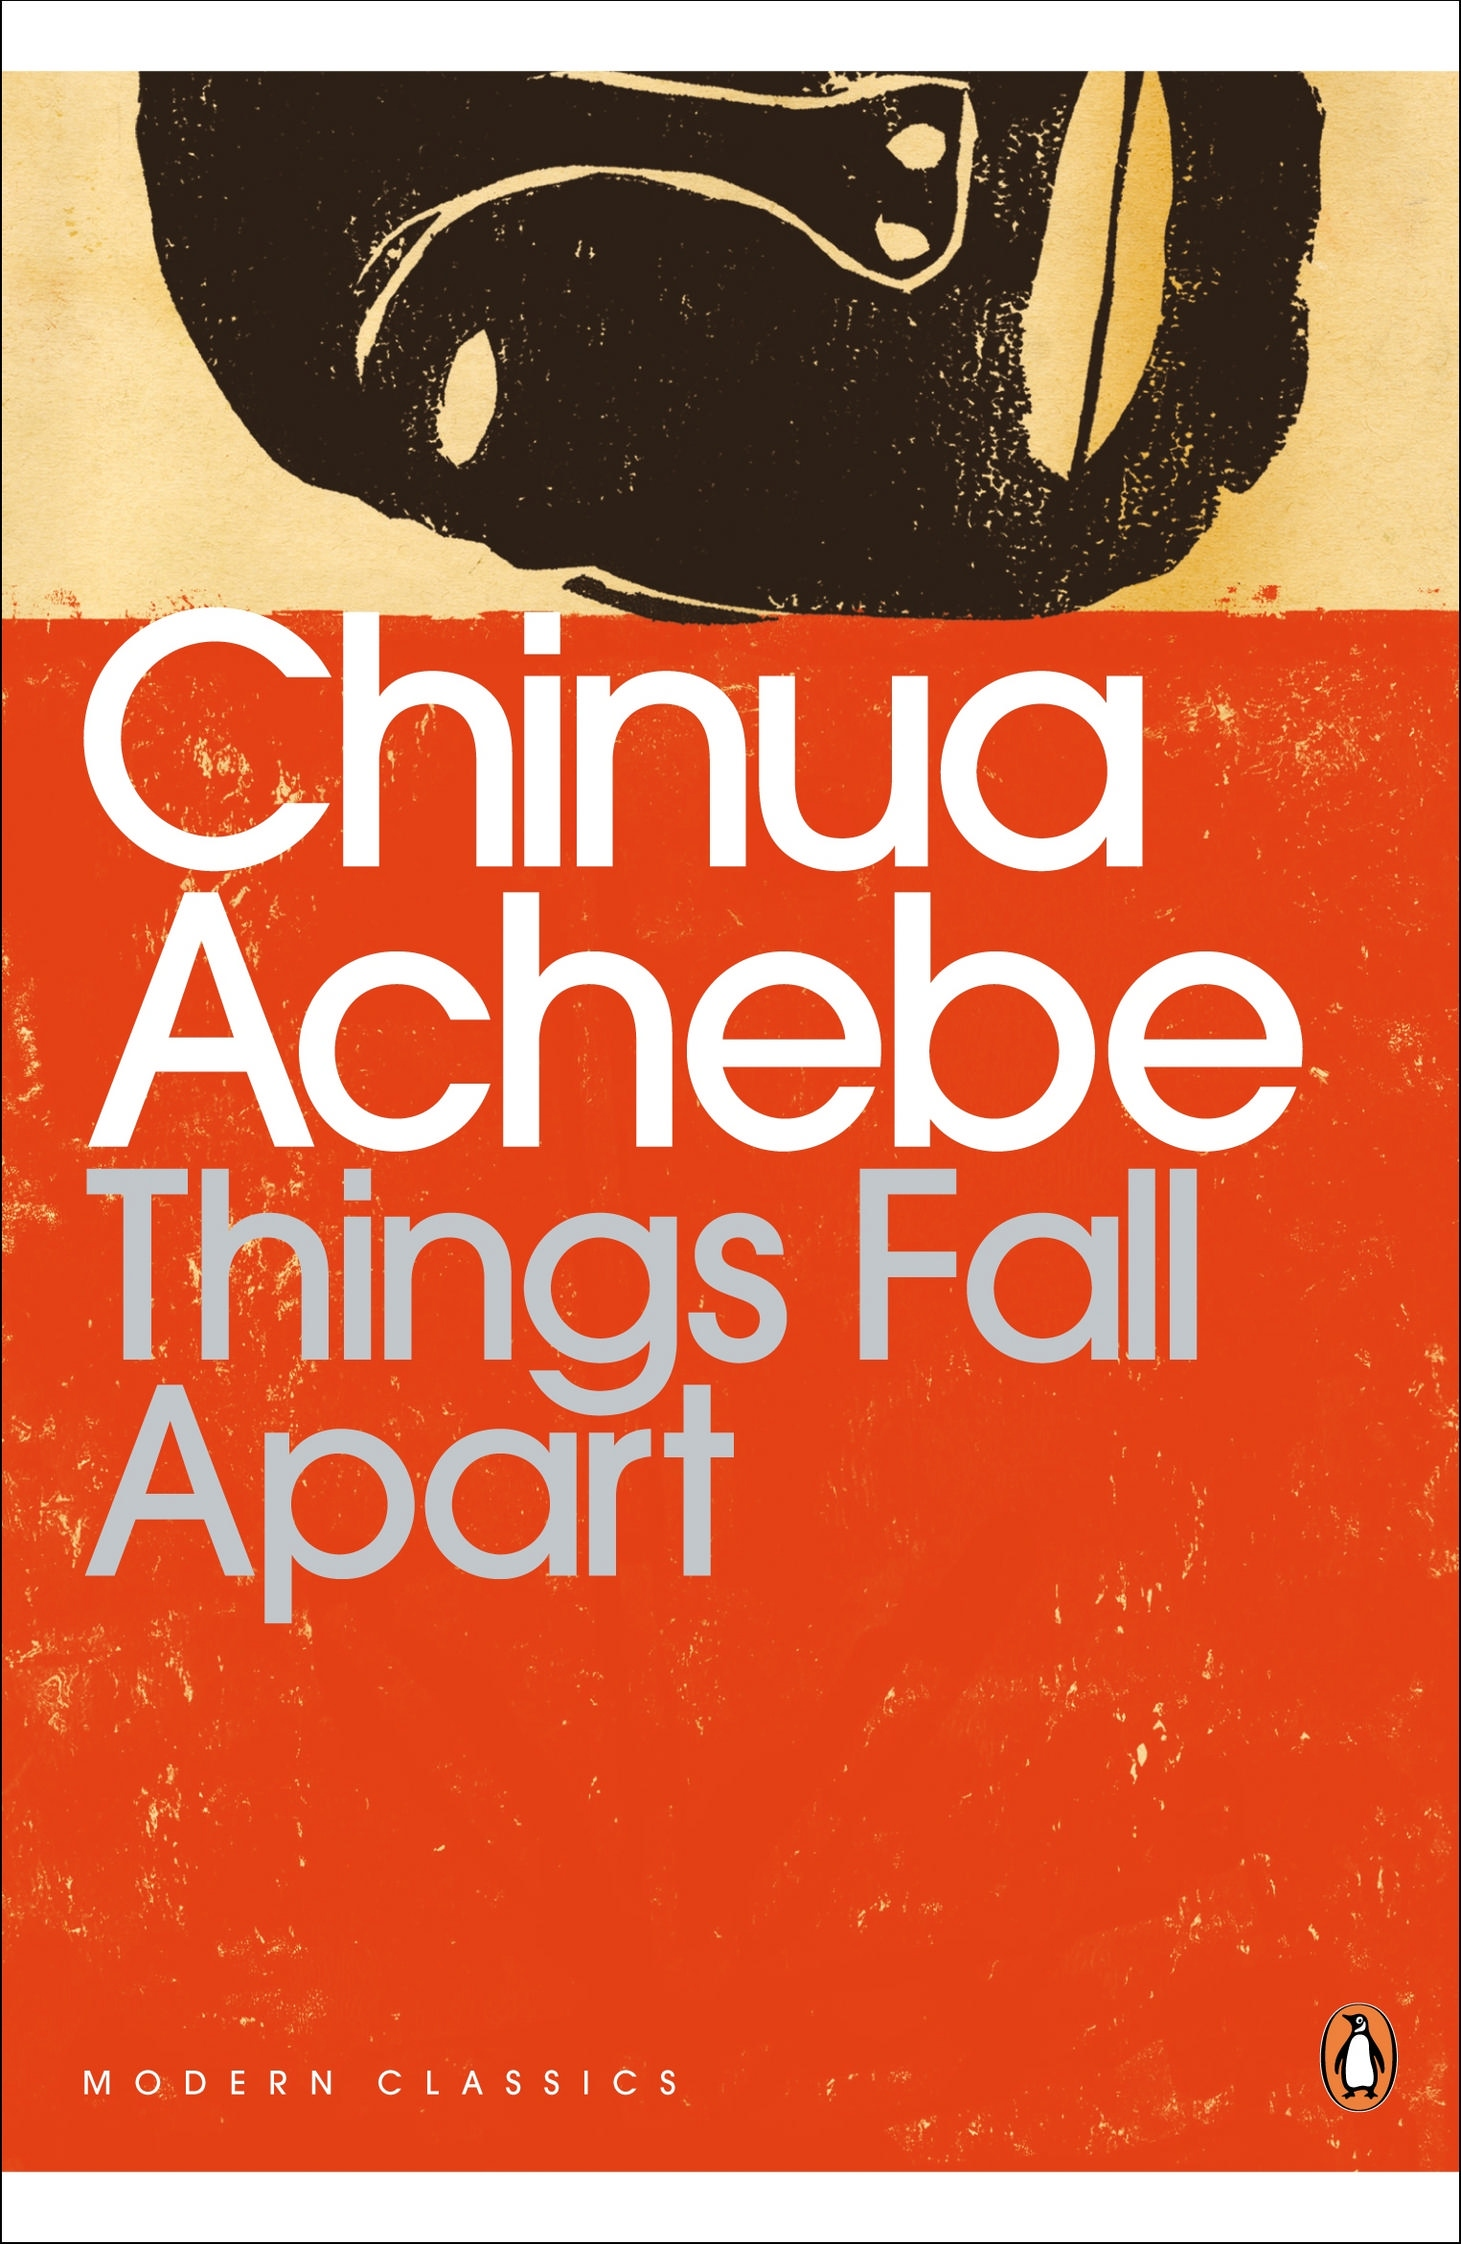 a review of chinua achebes novel things fall apart